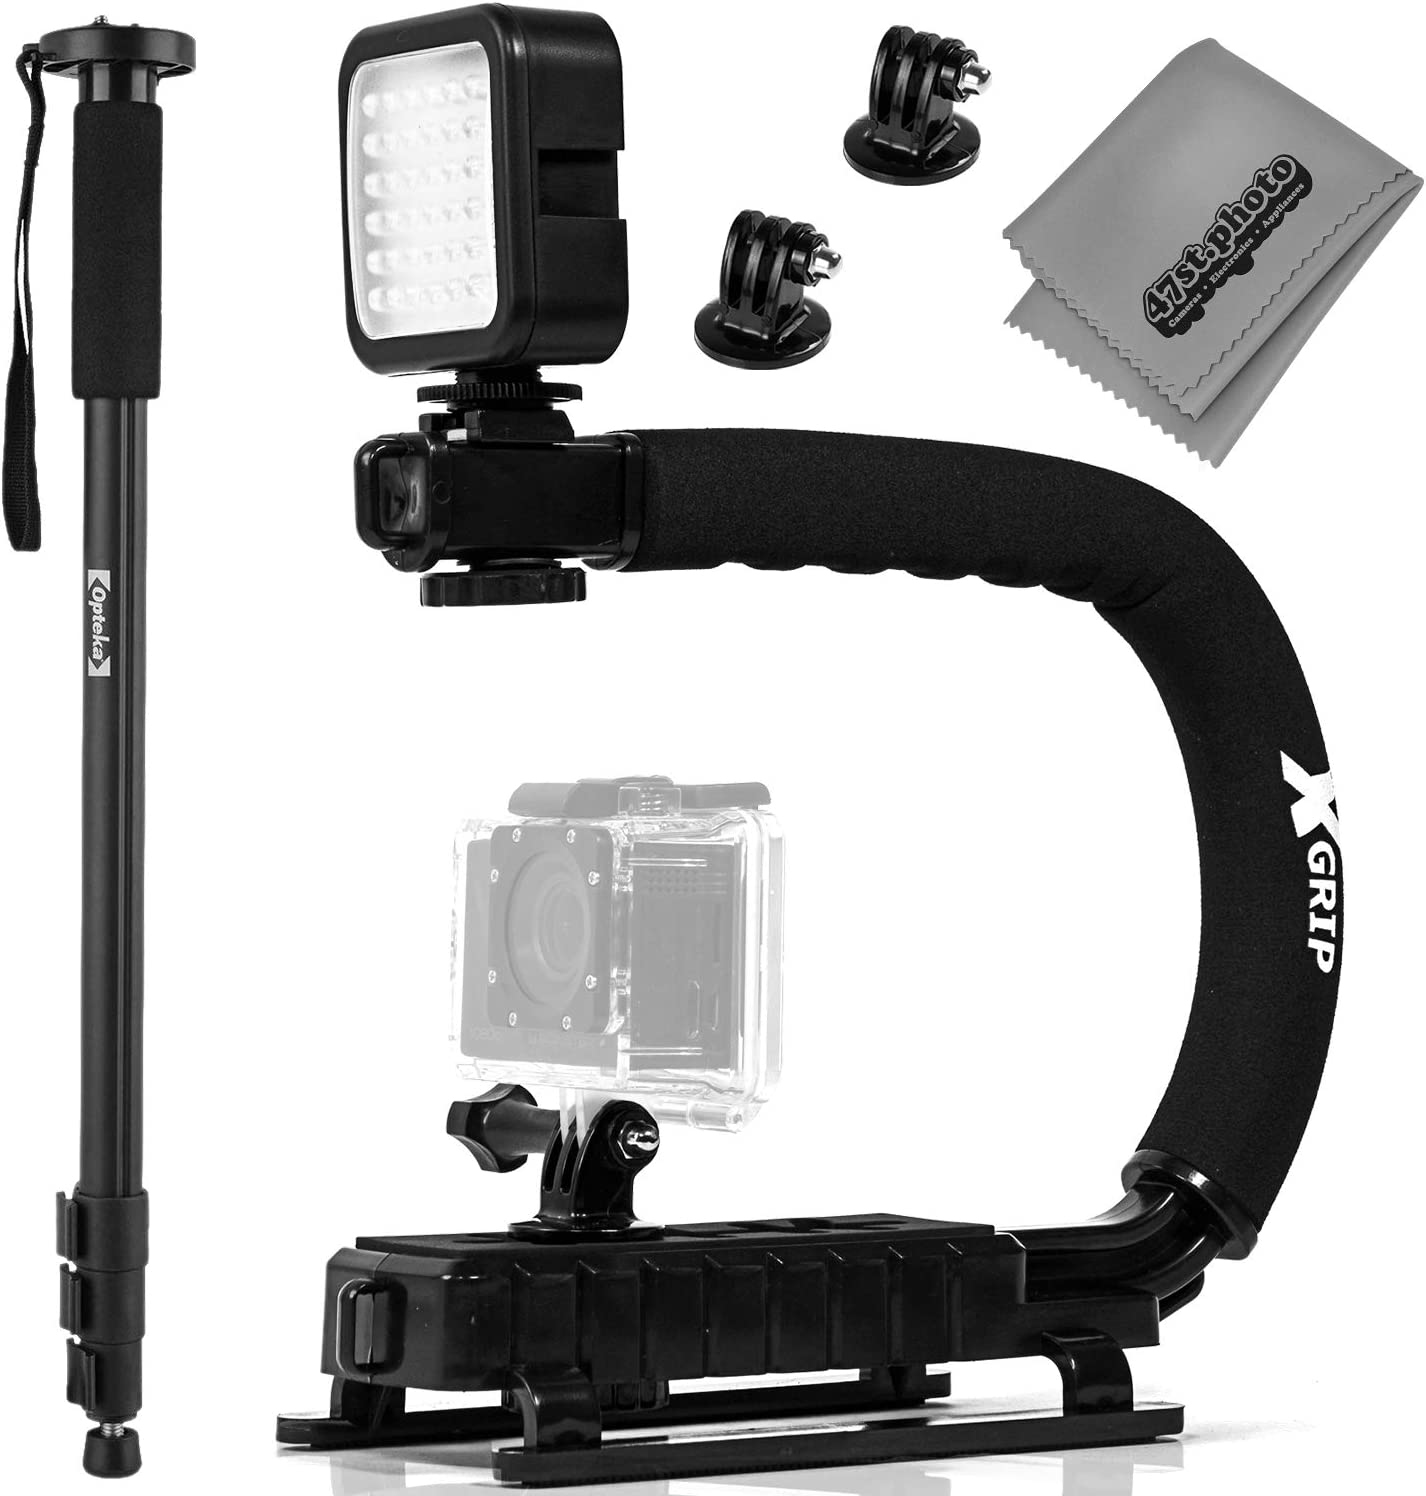 Fujifilm X-M1 Vertical Shoe Mount Stabilizer Handle Pro Video Stabilizing Handle Grip for